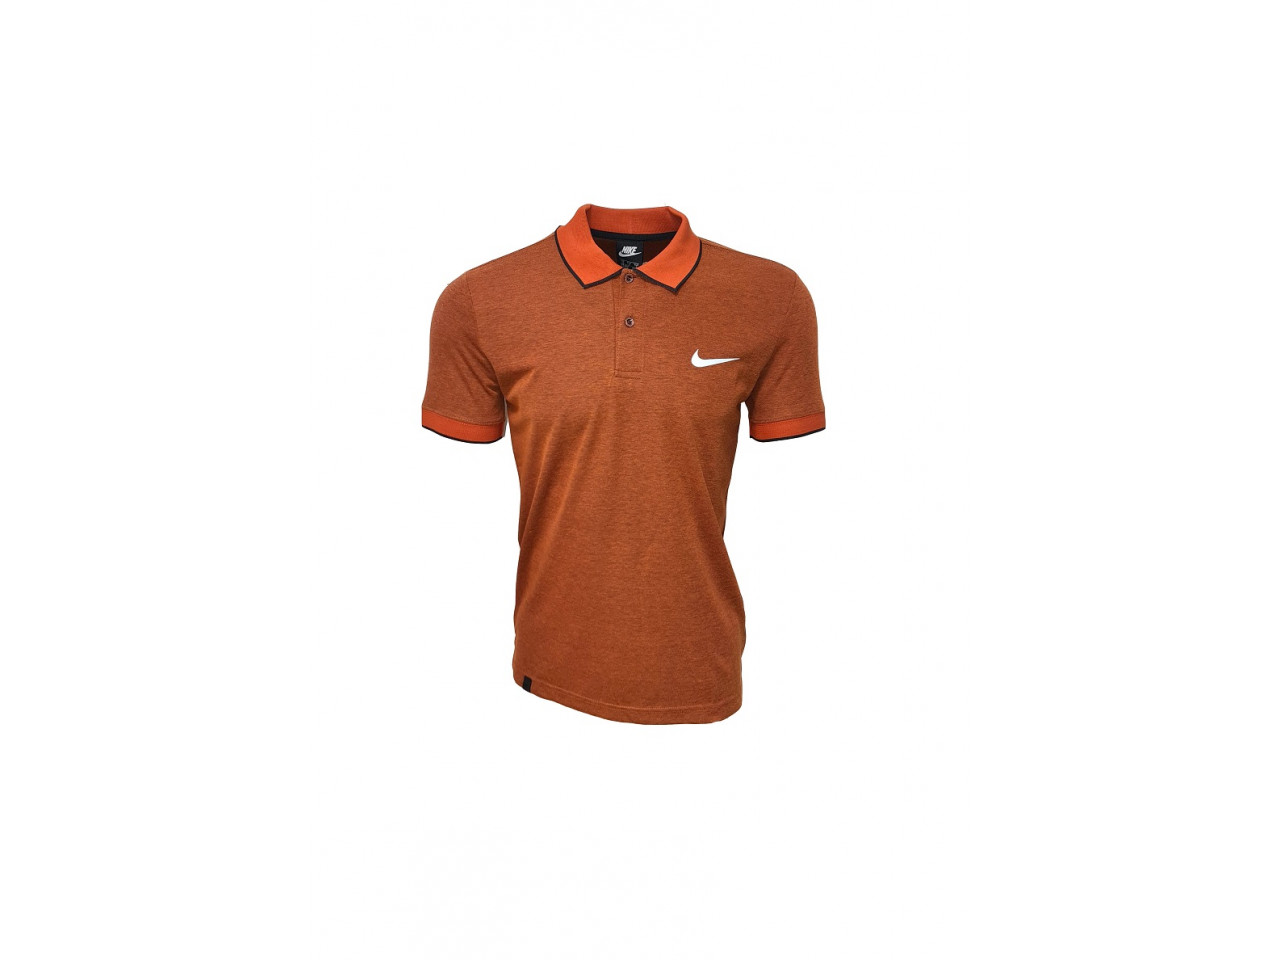 Nike Polo T-Shirt Orange